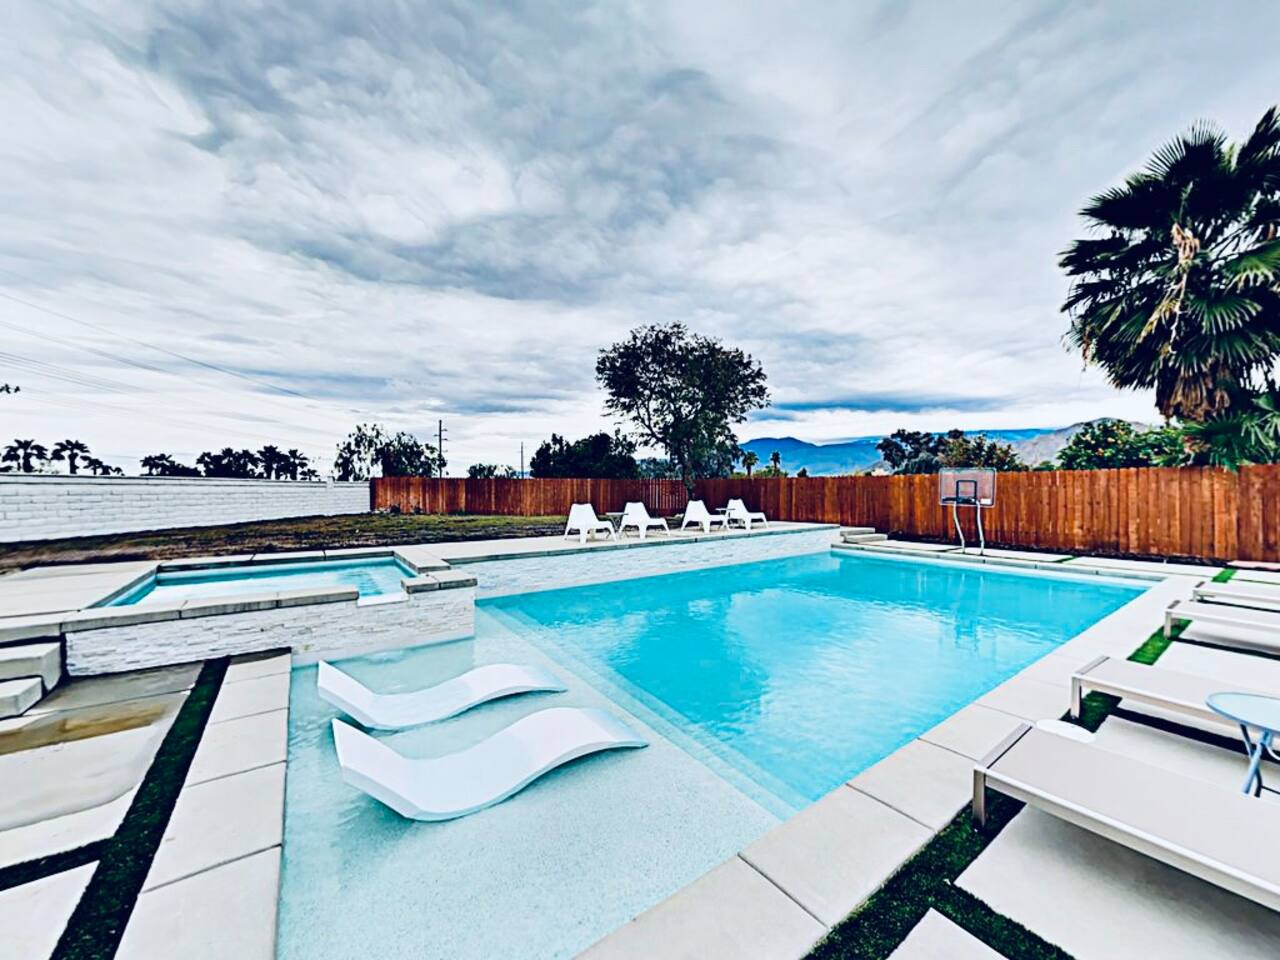 19'x38' size of big private oasis with basketball hoop, tanning deck with in-water chairs/umbrella, and spa surrounded by gorgeous mountain